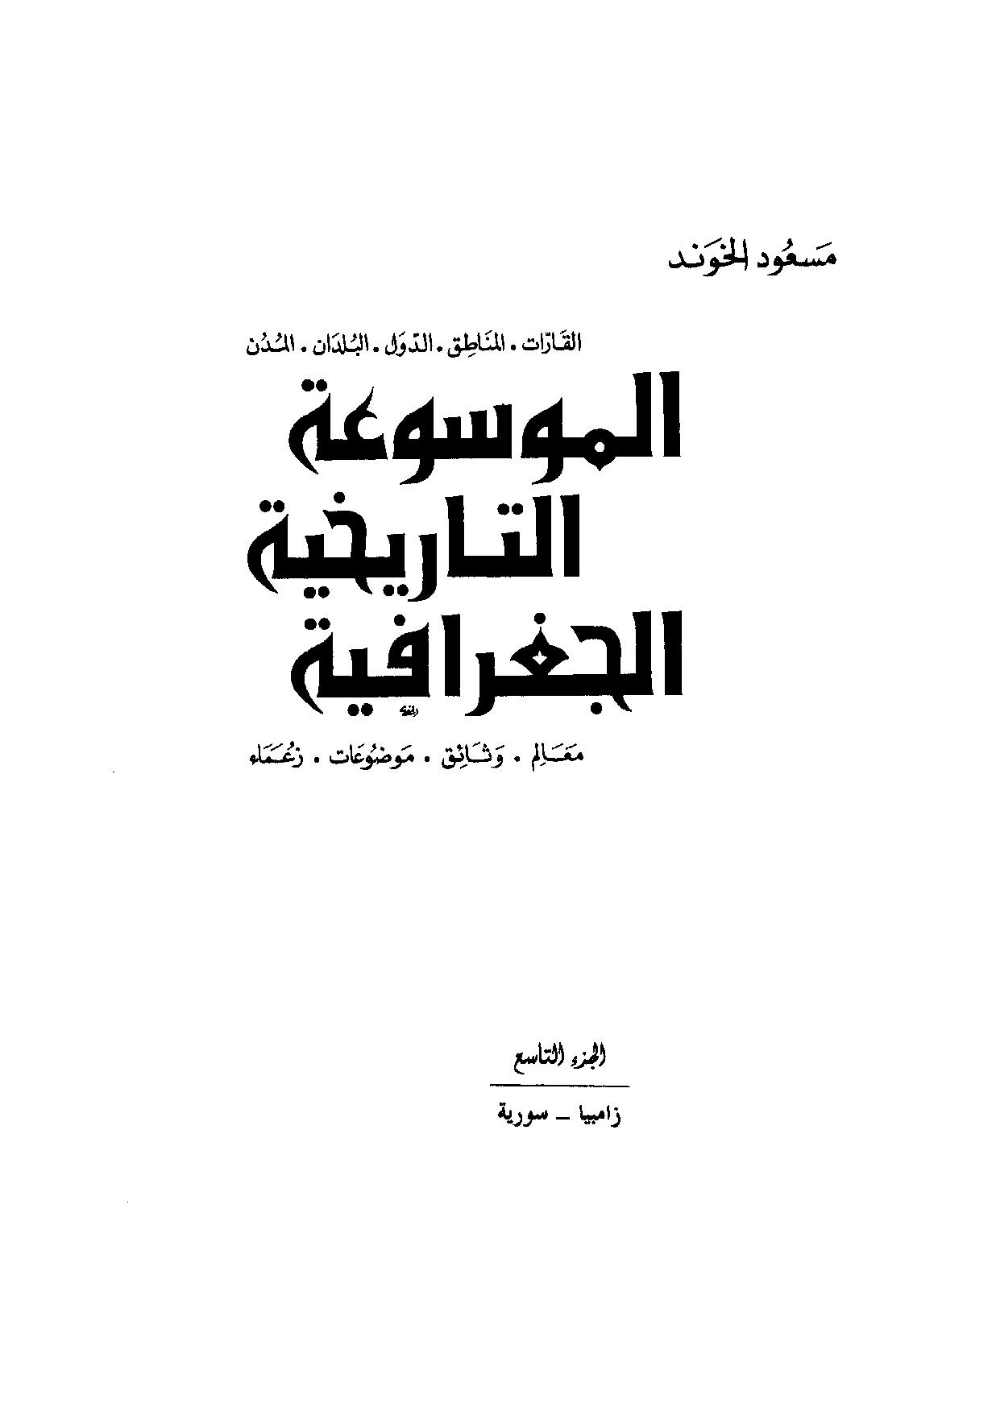 Pin By Abdellah Maliki On Bons Livres In 2021 Math Math Equations Streaming